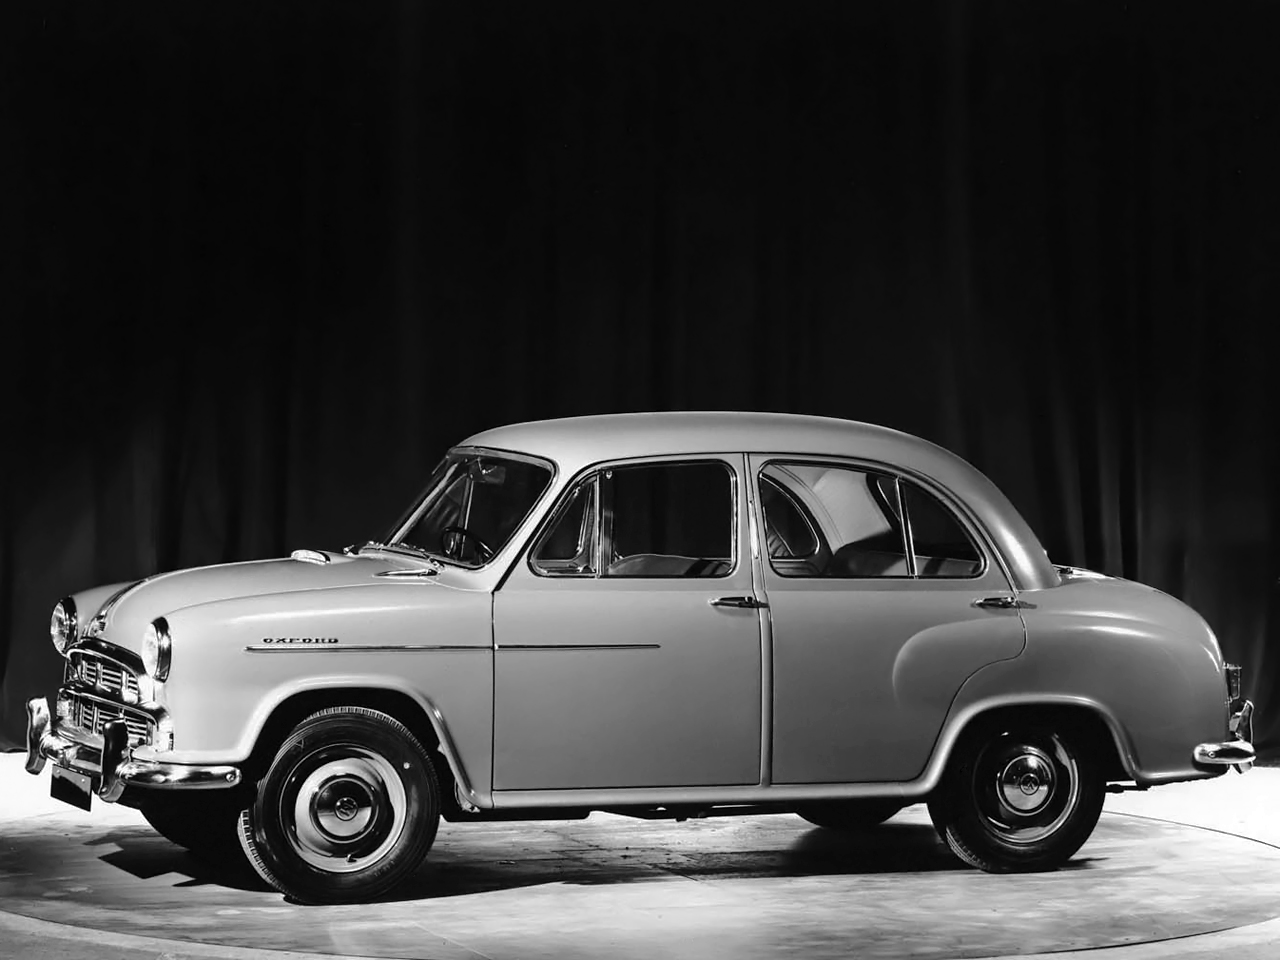 The Oxford Series II from Morris Motors